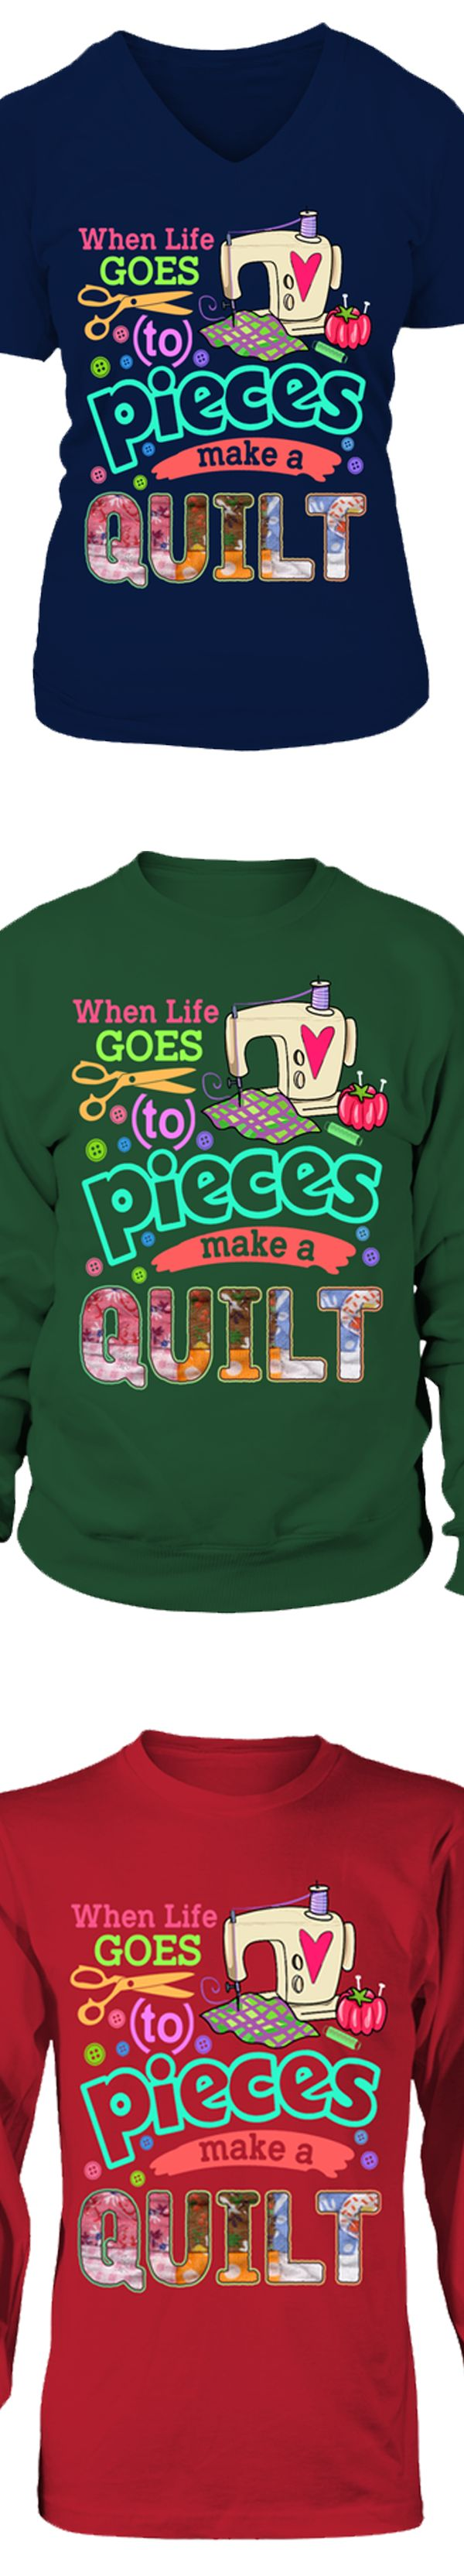 When Life Goes To Pieces Make A Quilt...  Show your love of Quilting with this design printed in the USA.  Available in Gildan Cotton T-Shirt / V-Neck / Long-Sleeve / Sweatshirt.   US/Canada orders are delivered in 10-14 days.